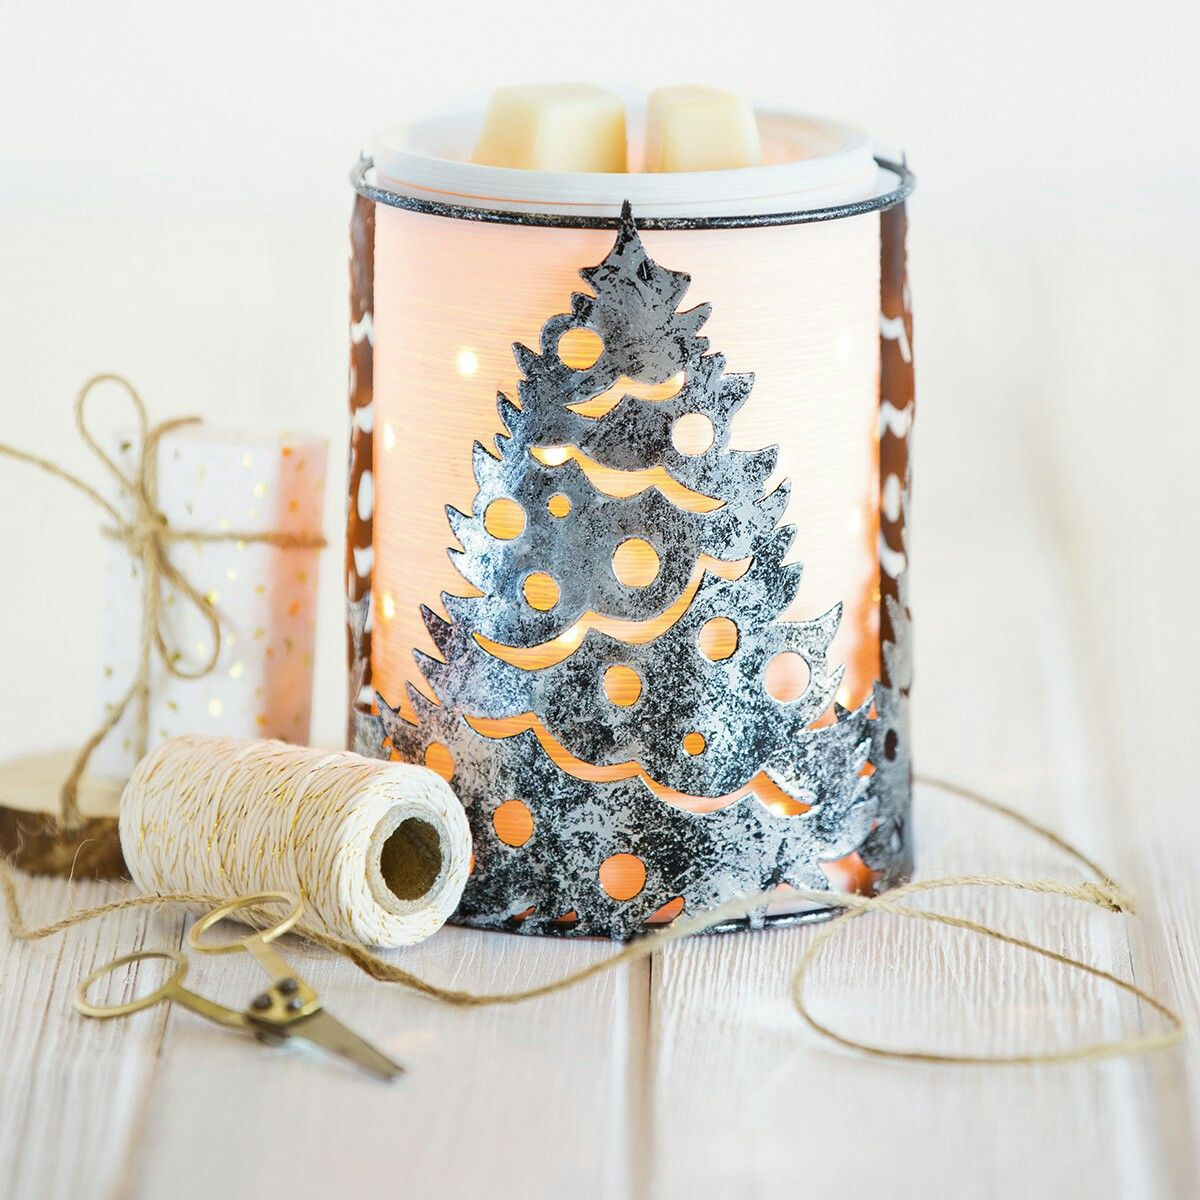 O\' Christmas Tree wrap with Etched Core warmer | ***Scentsy ...